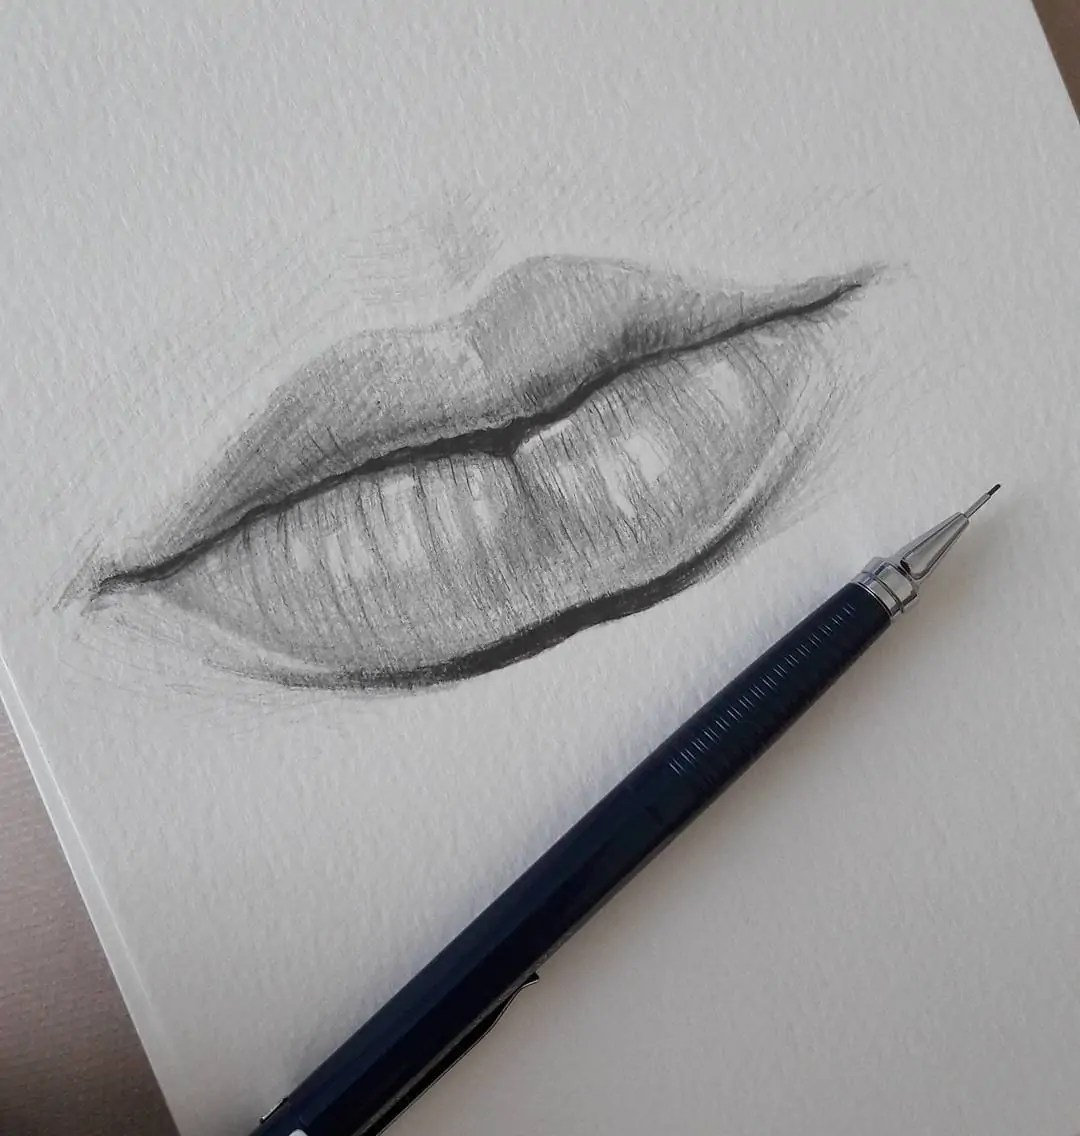 100+ Stunning Realistic Portrait Drawings 327